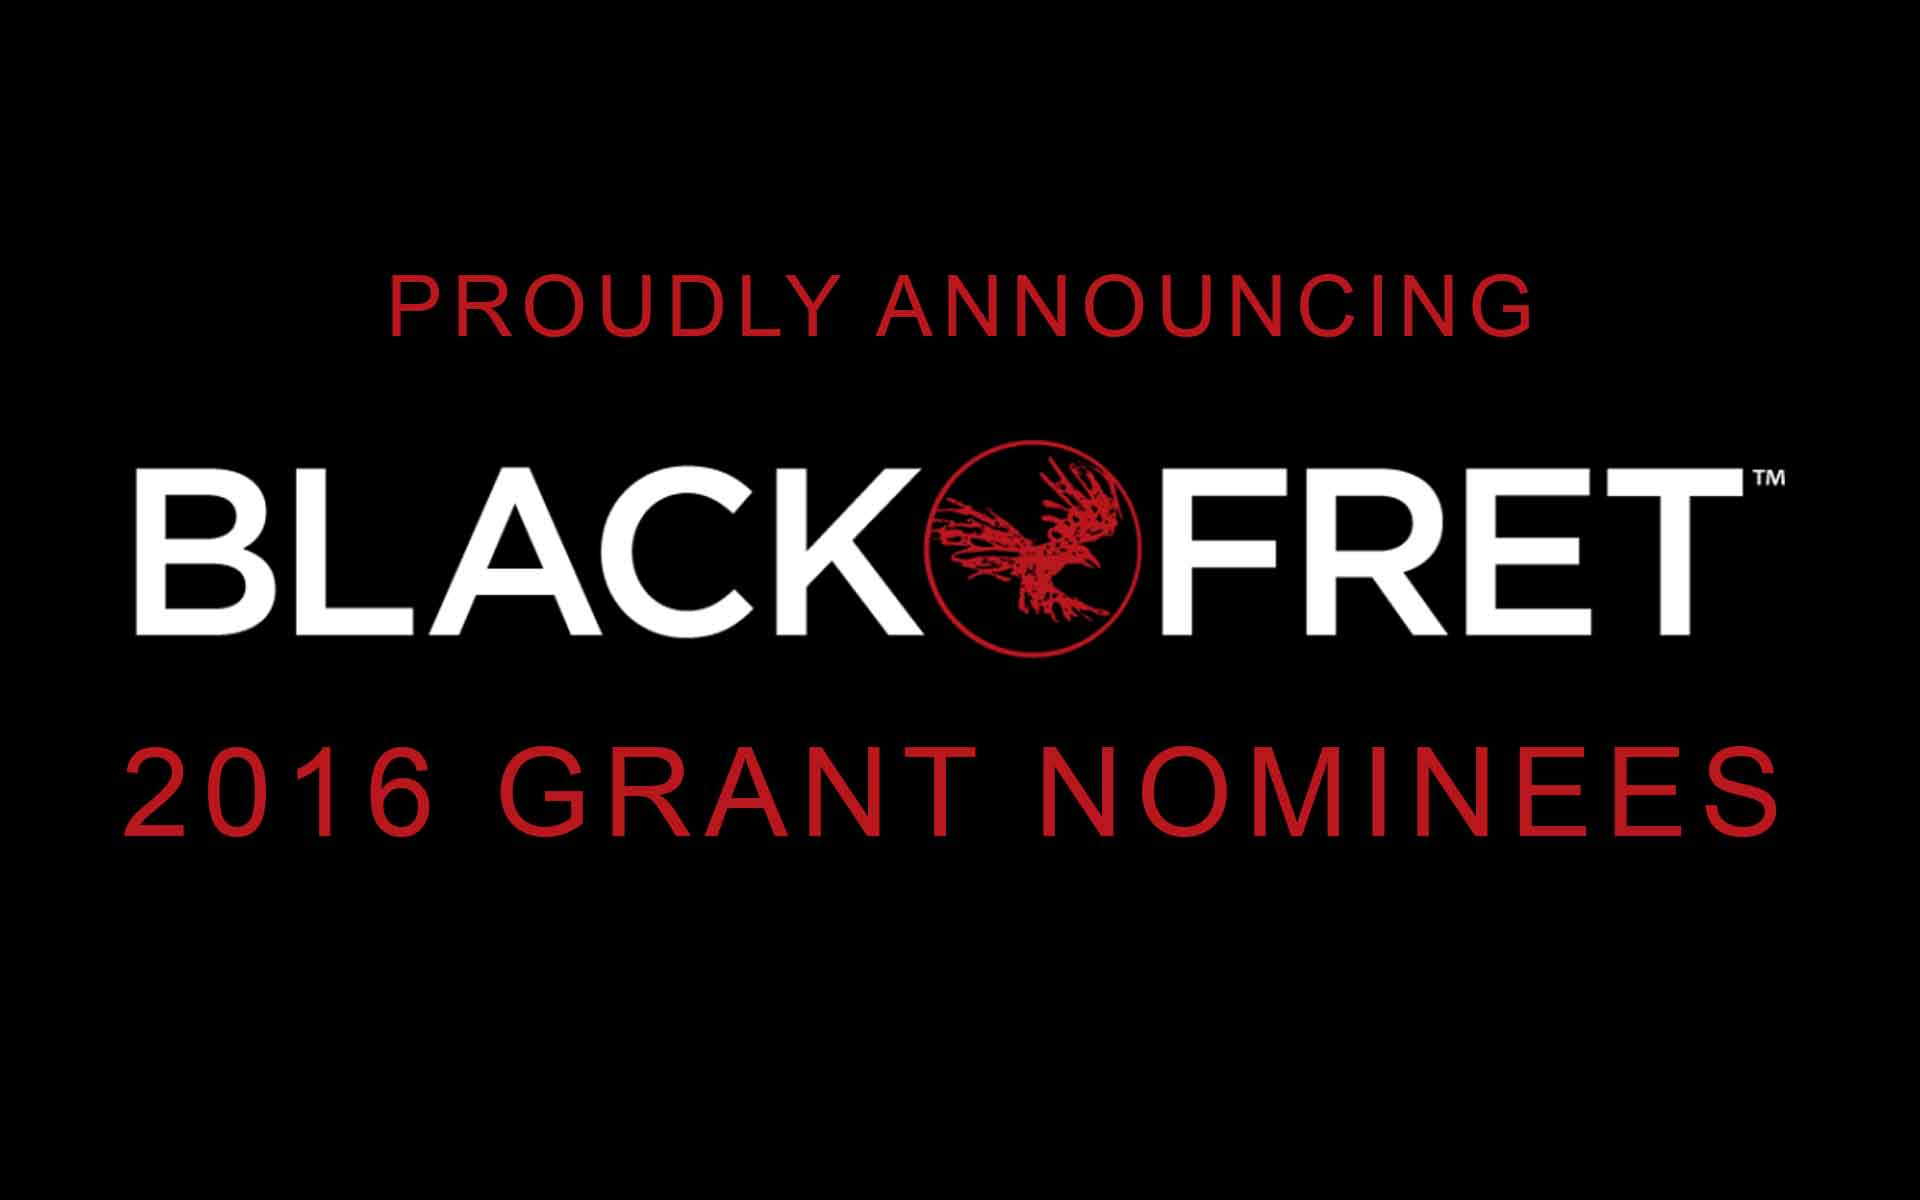 2016 Grant Nominees